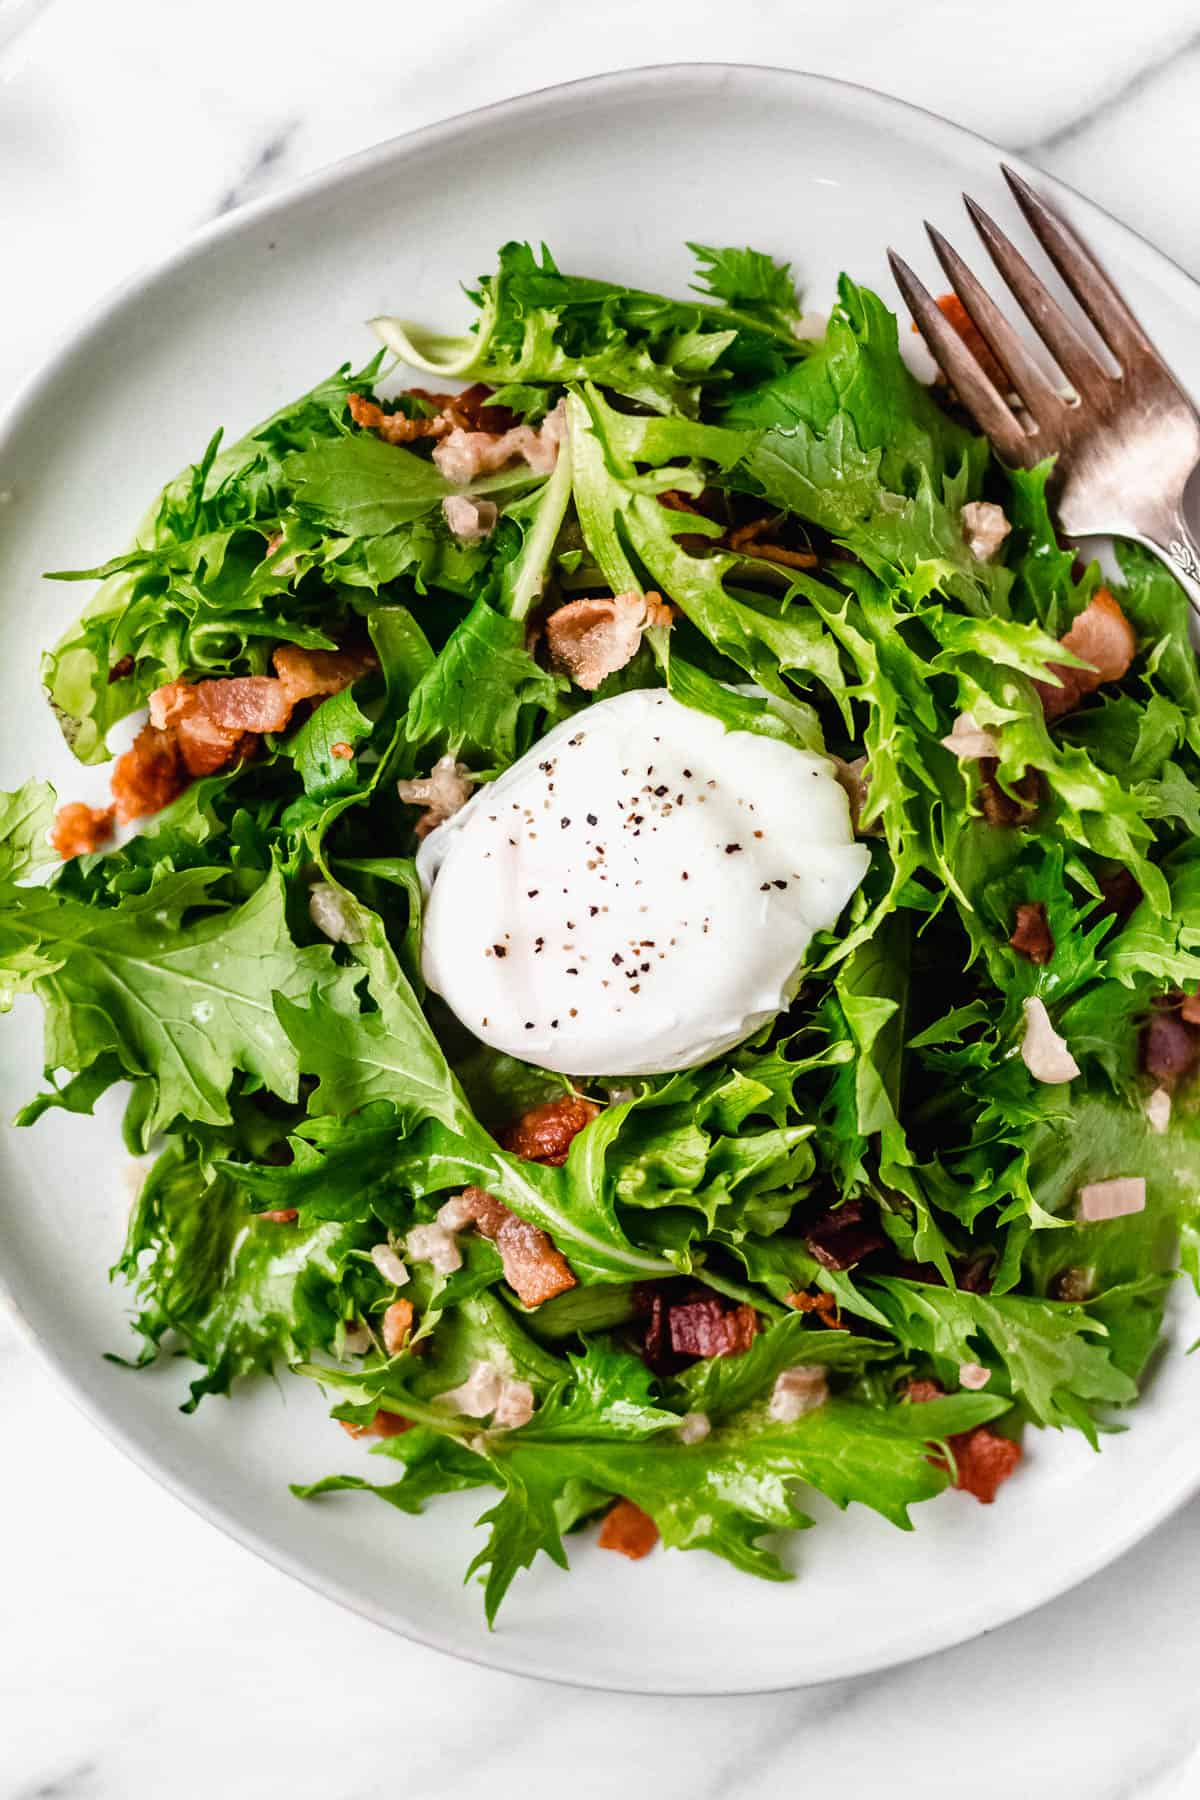 Overhead view of lyonnaise salad with an intact poached egg on top on a white plate with a fork